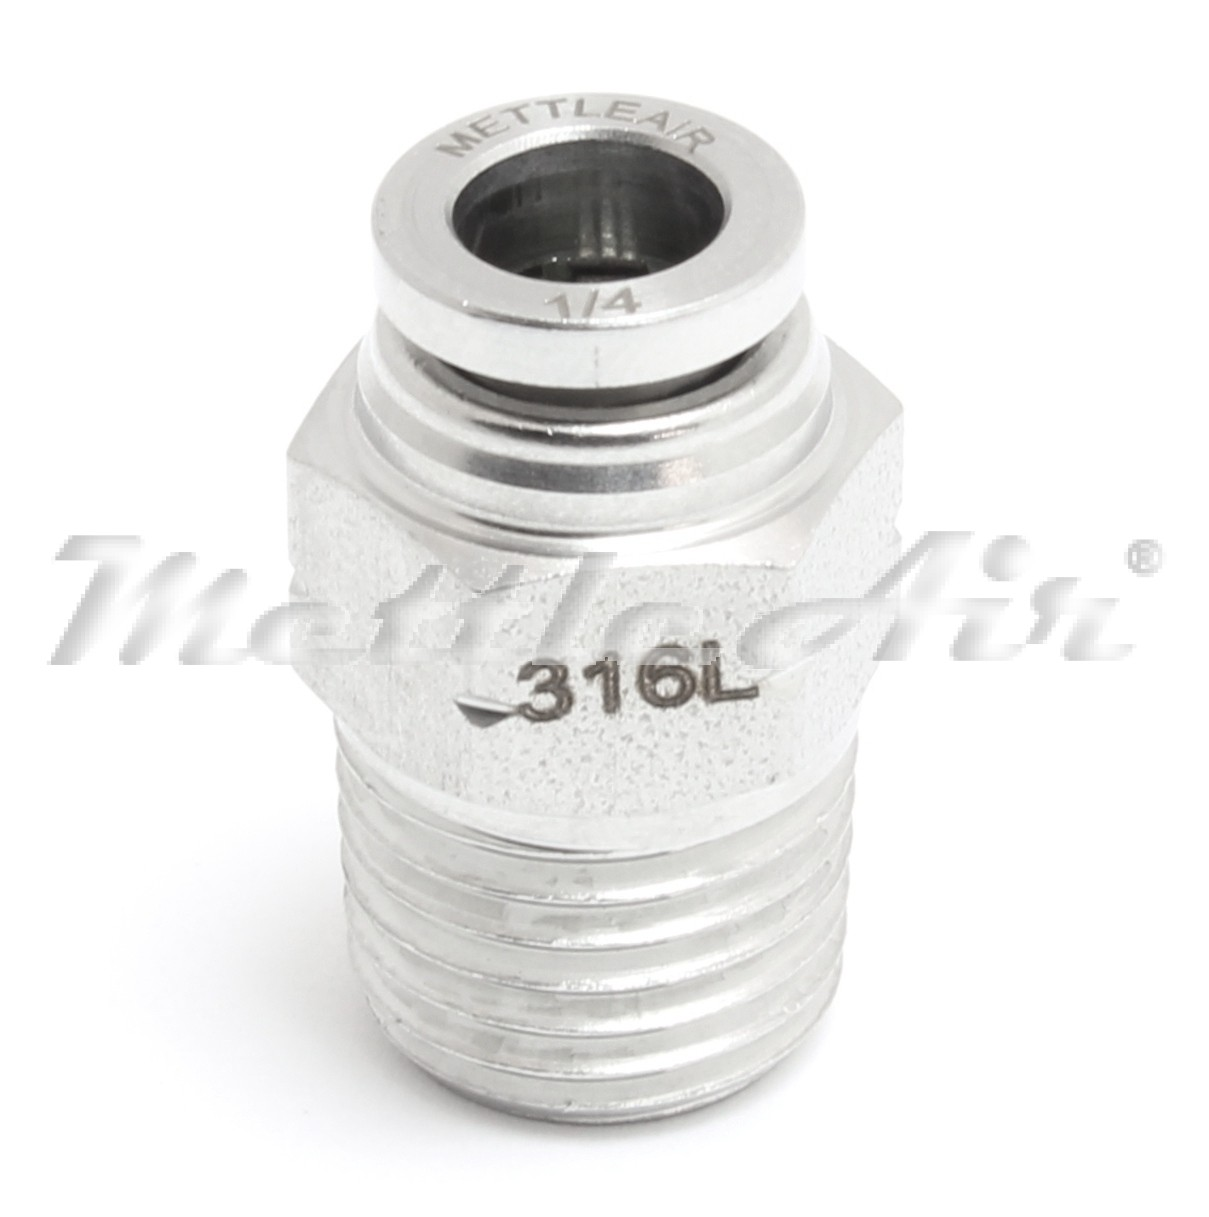 MettleAir 316L Stainless Steel 1//2 OD x 1//2 NPT Elbow Male Push in to Connect Fitting 90/° One Touch Brass SMTL1//2-N04